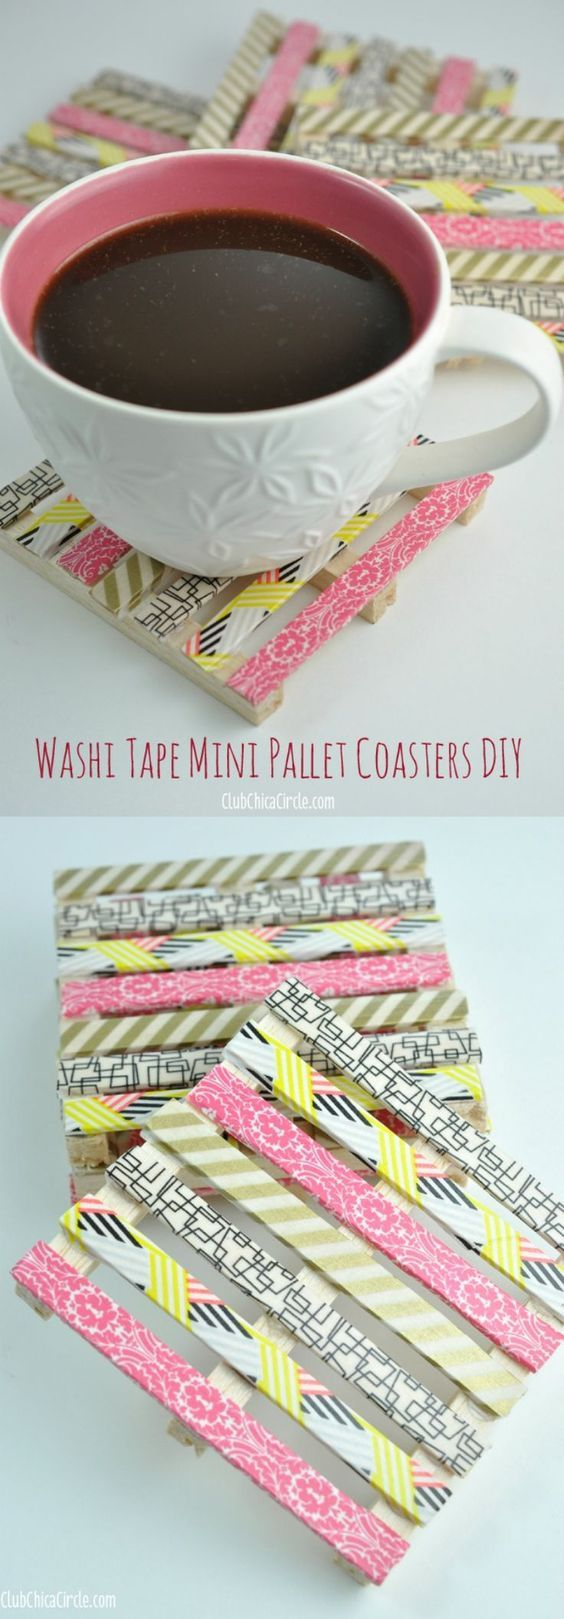 15 DIY Projects to Have Coasters #craftstosell